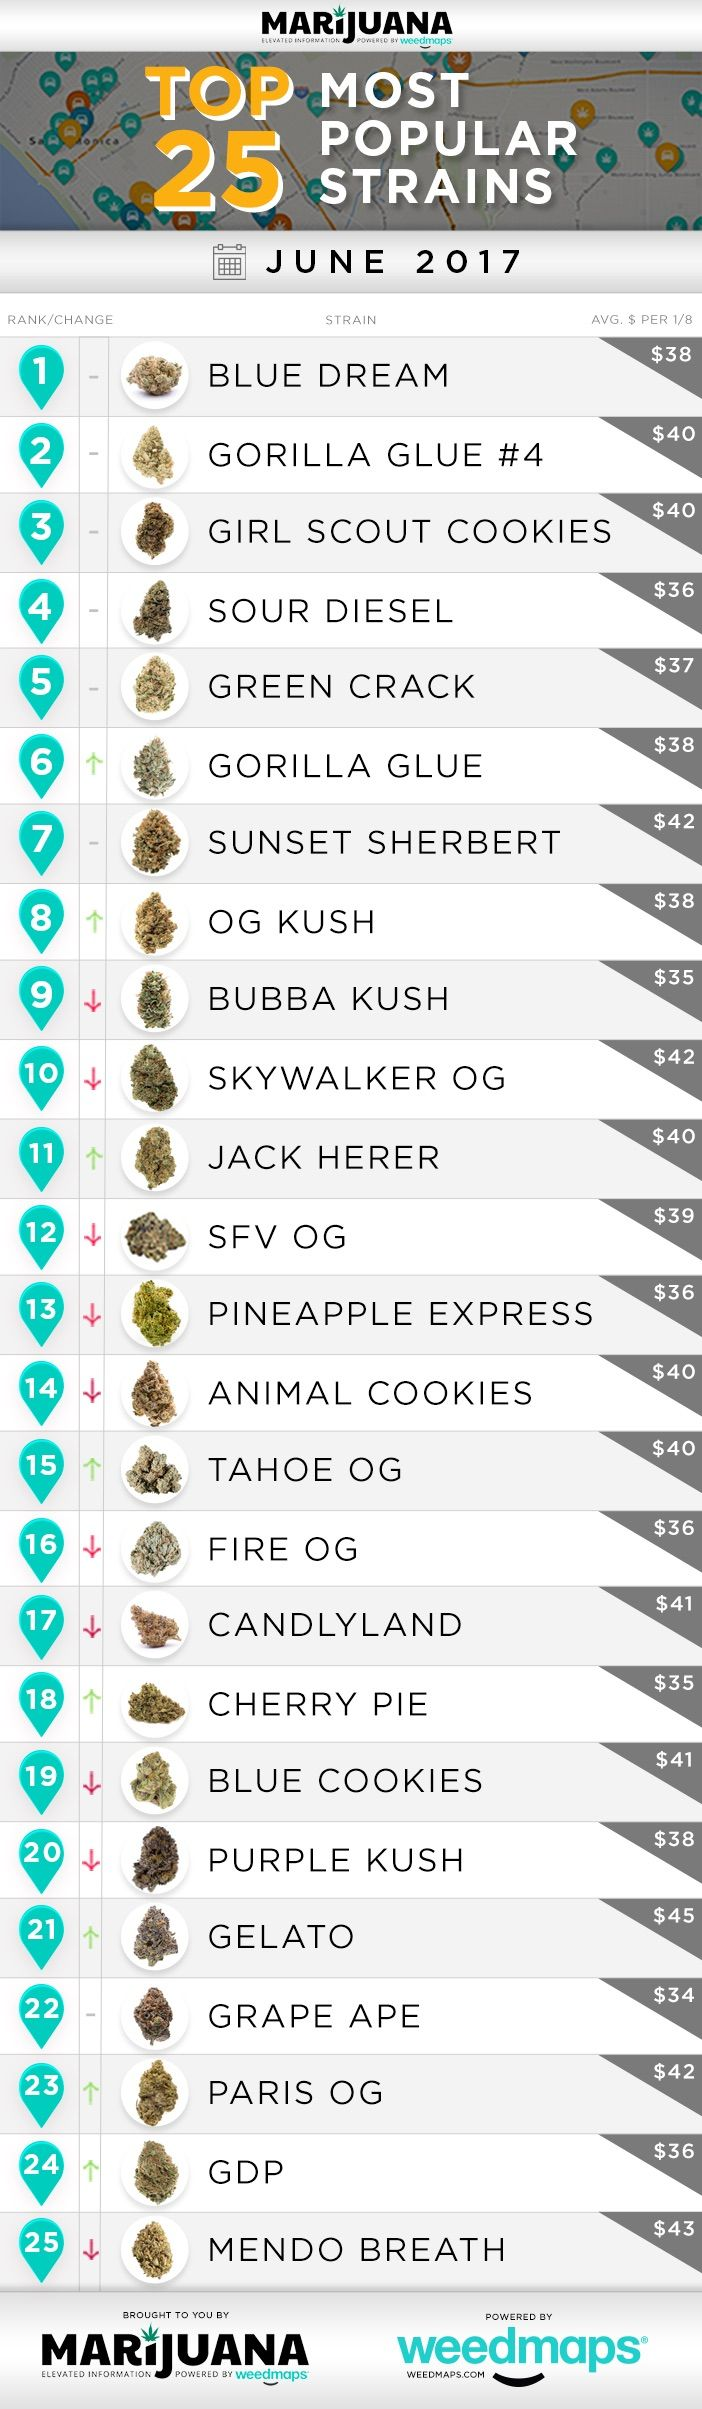 Each month, Marijuana.com sorts through roughly eight million data points collected from Weedmaps-listed dispensaries and delivery services across North America to determine the industry's most popular strains.